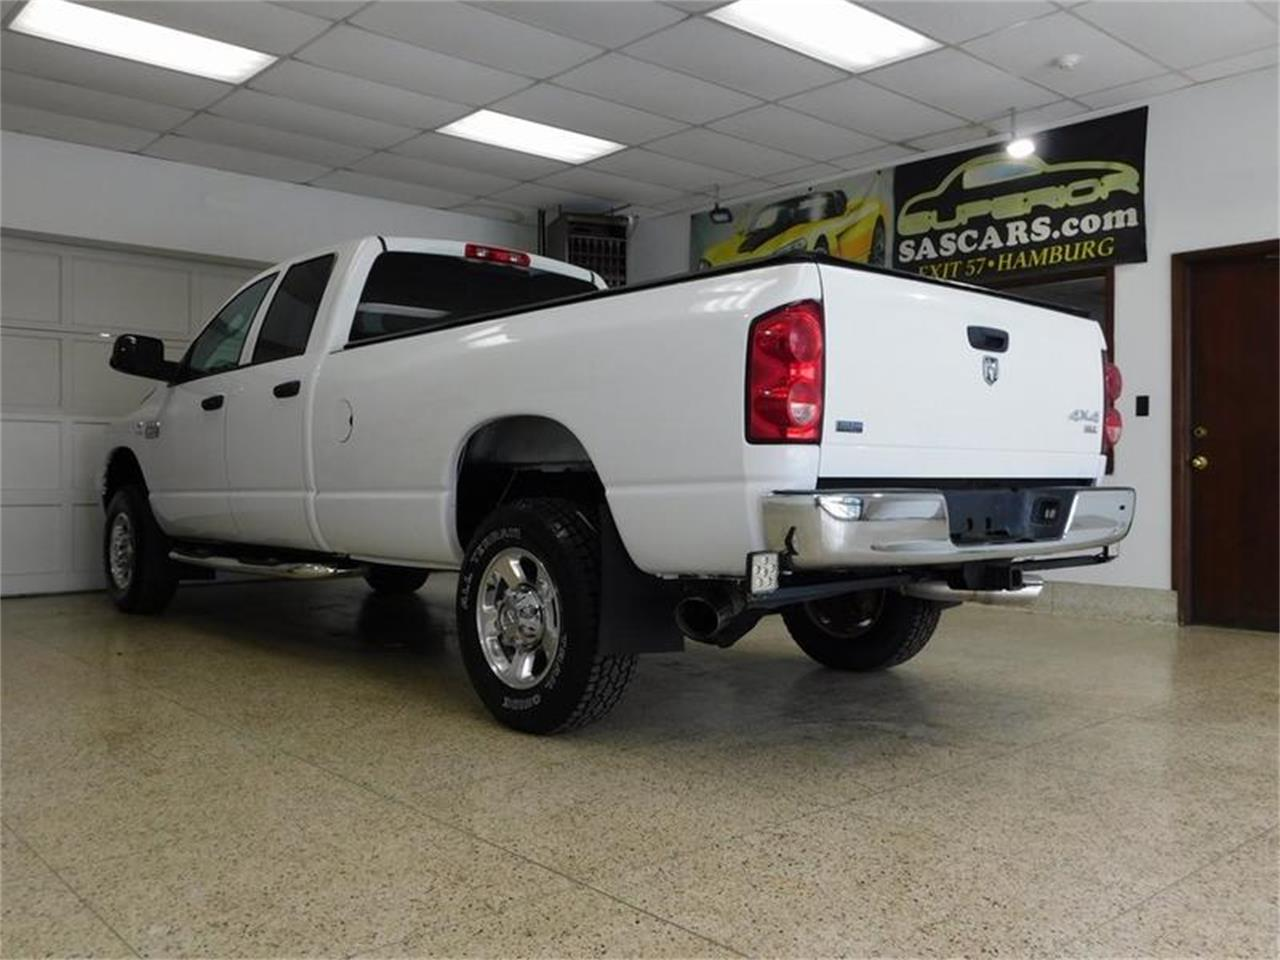 2009 Dodge Ram 3500 for sale in Hamburg, NY – photo 36